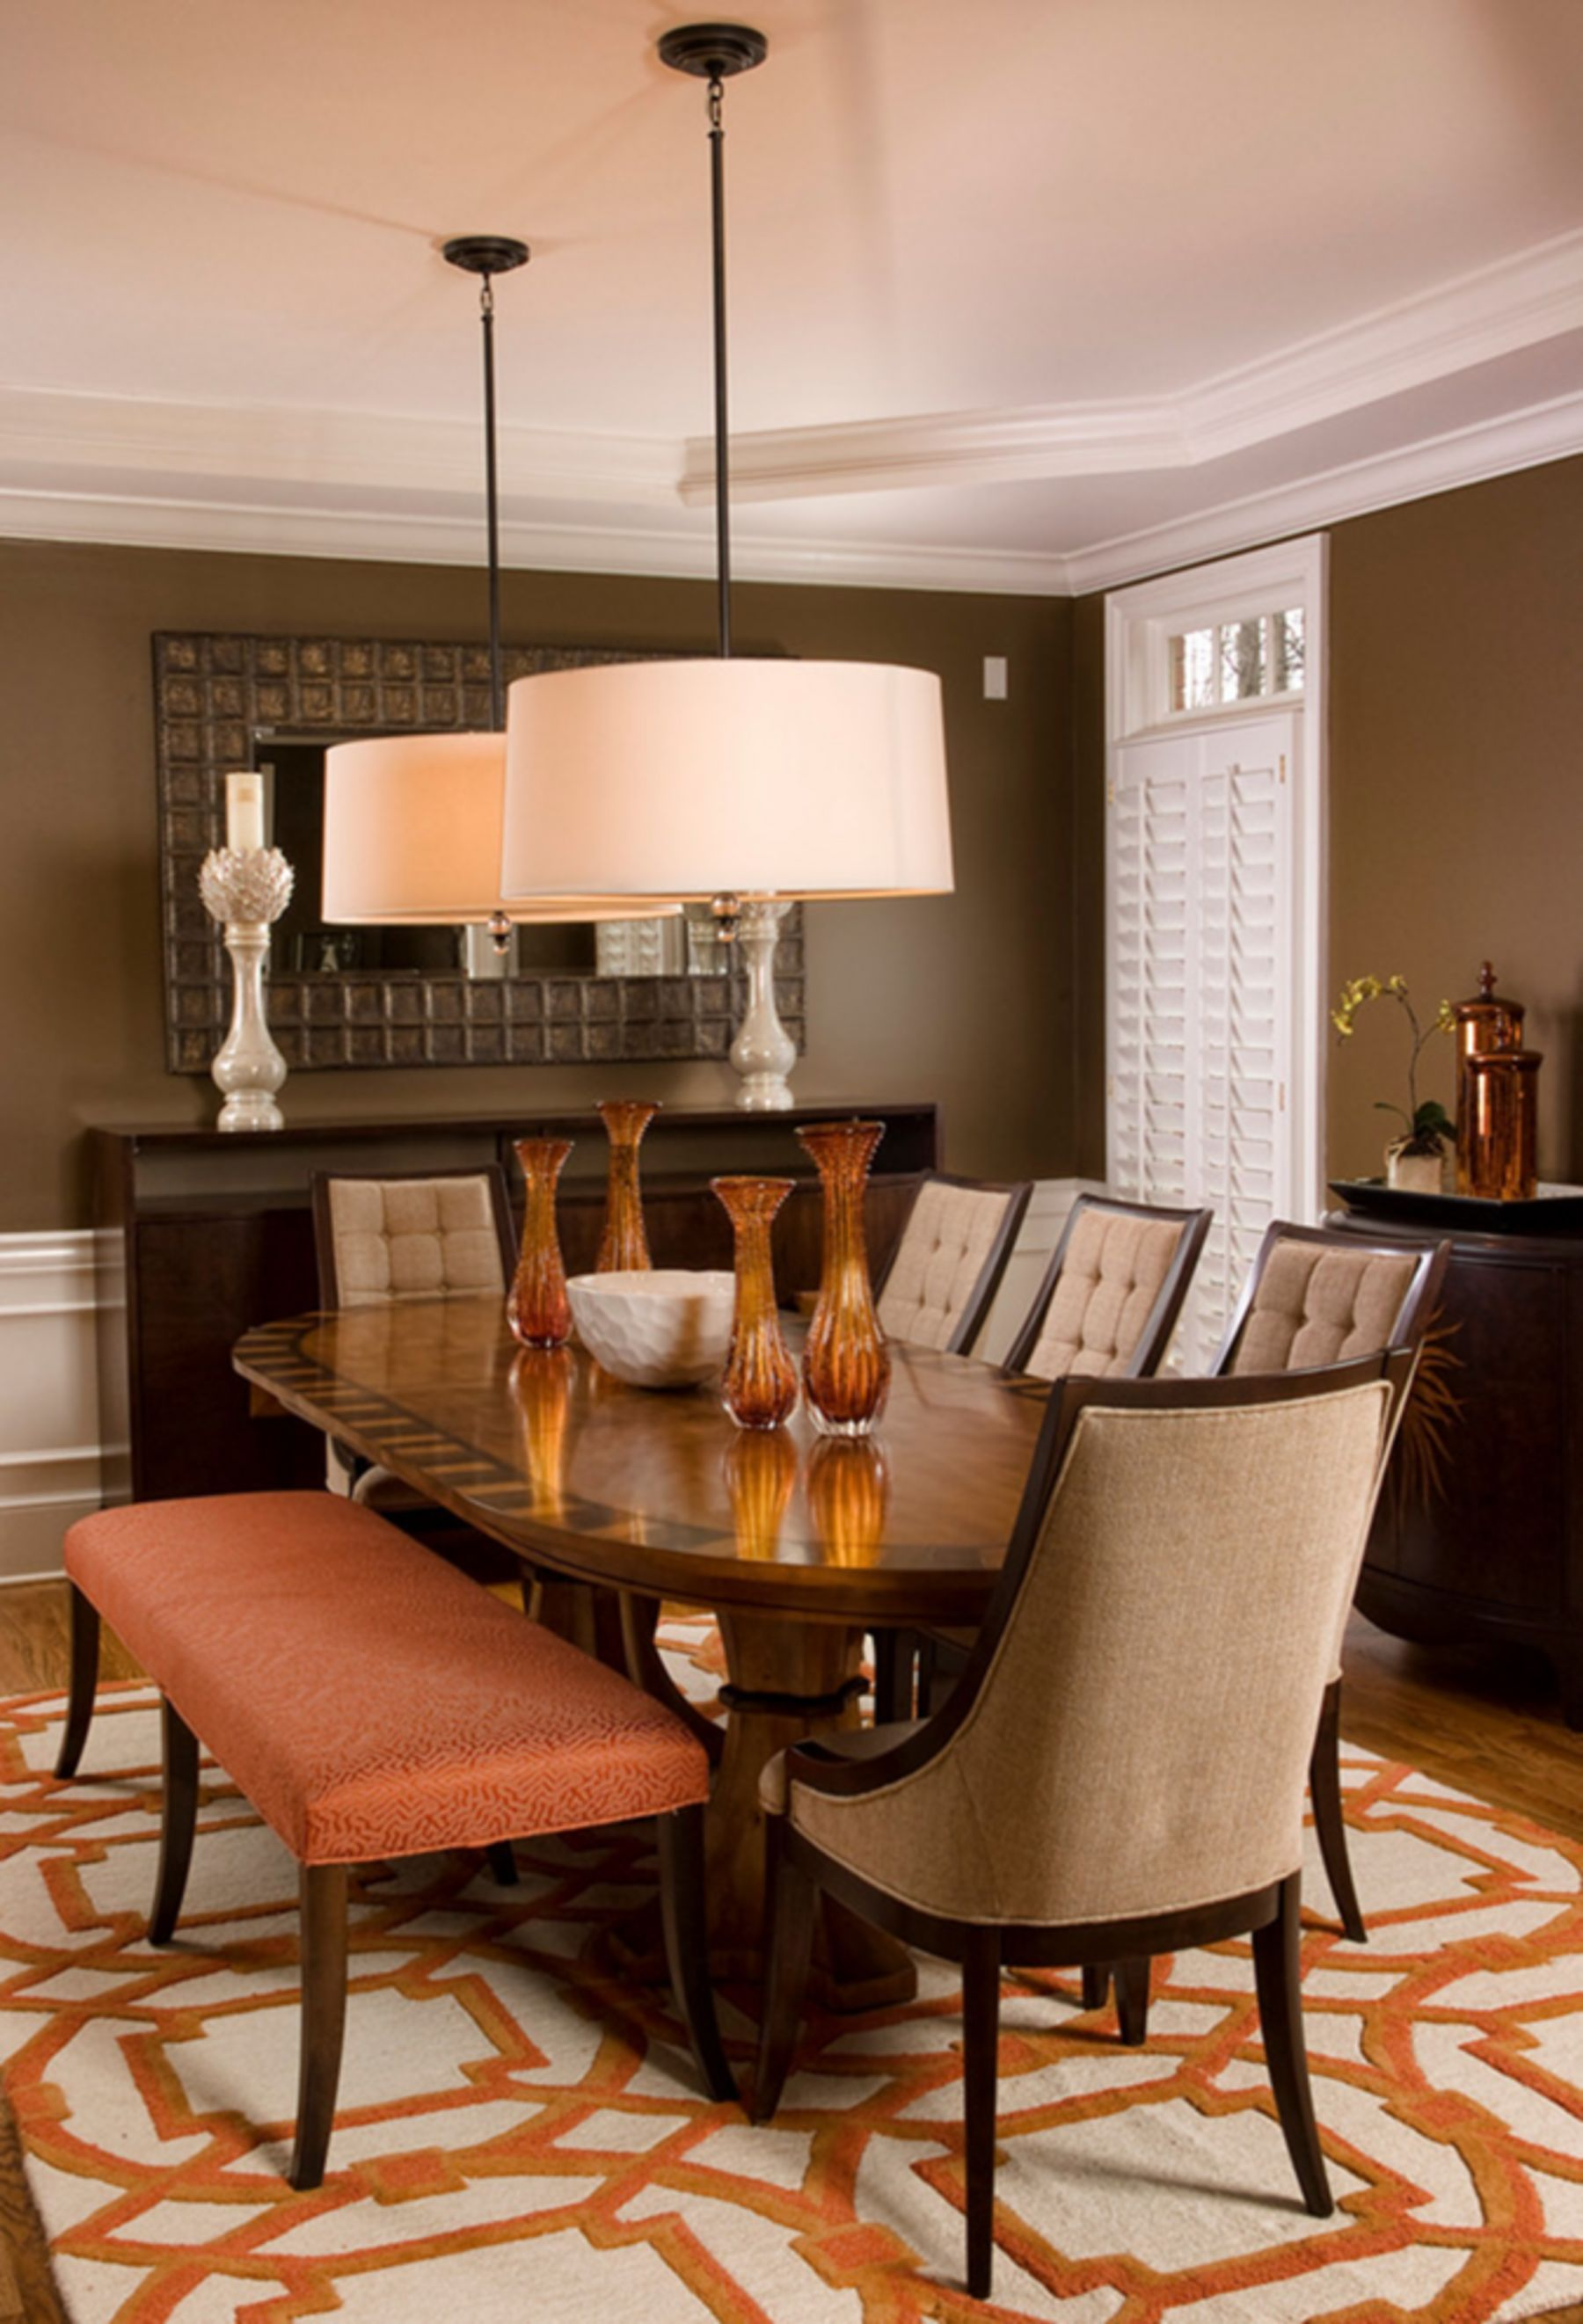 25 Lovely Modern Rugs Ideas For Your Dining Room Orange Dining